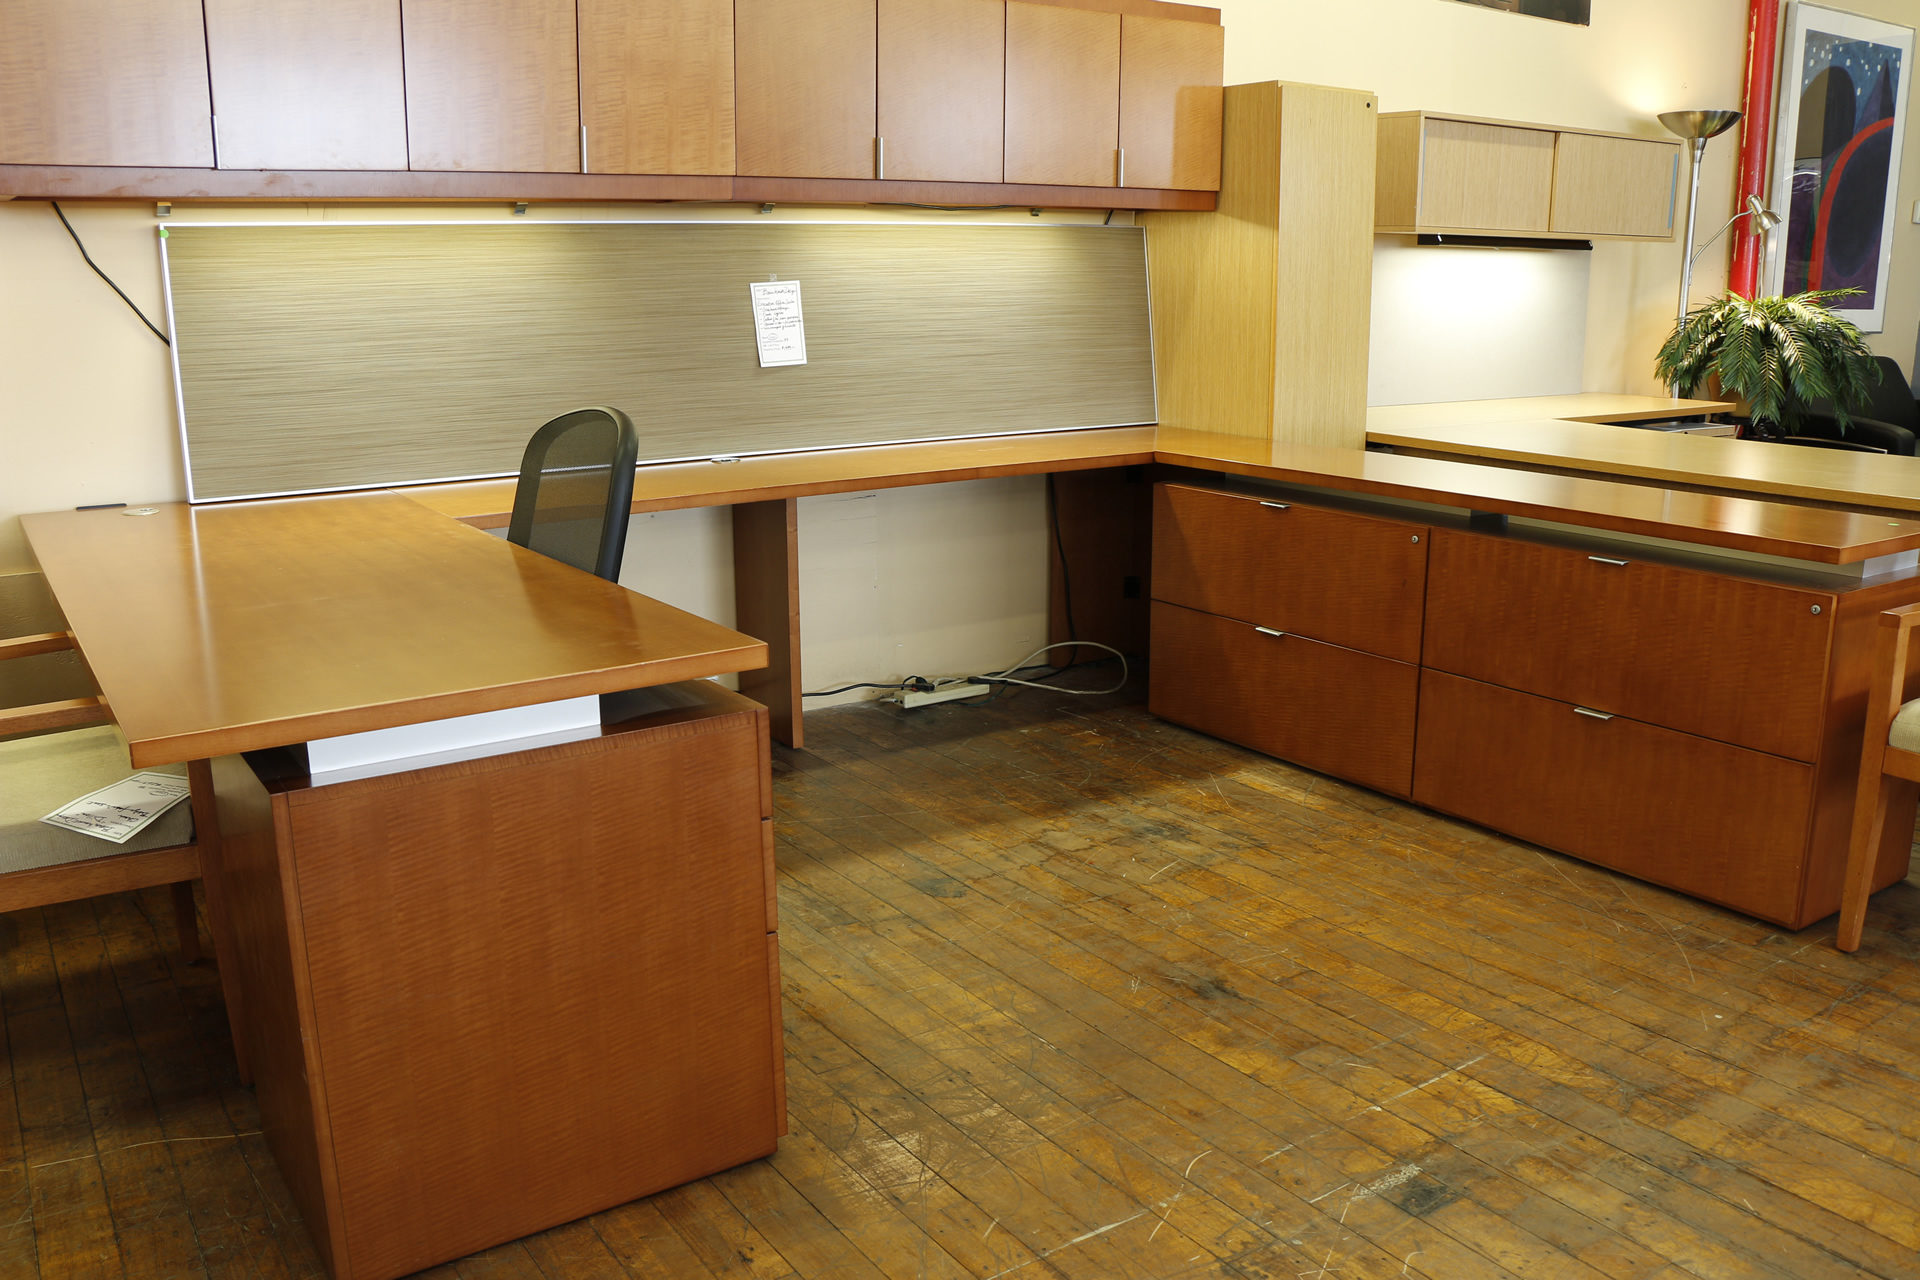 peartreeofficefurniture_peartreeofficefurniture_mg_4178.jpg